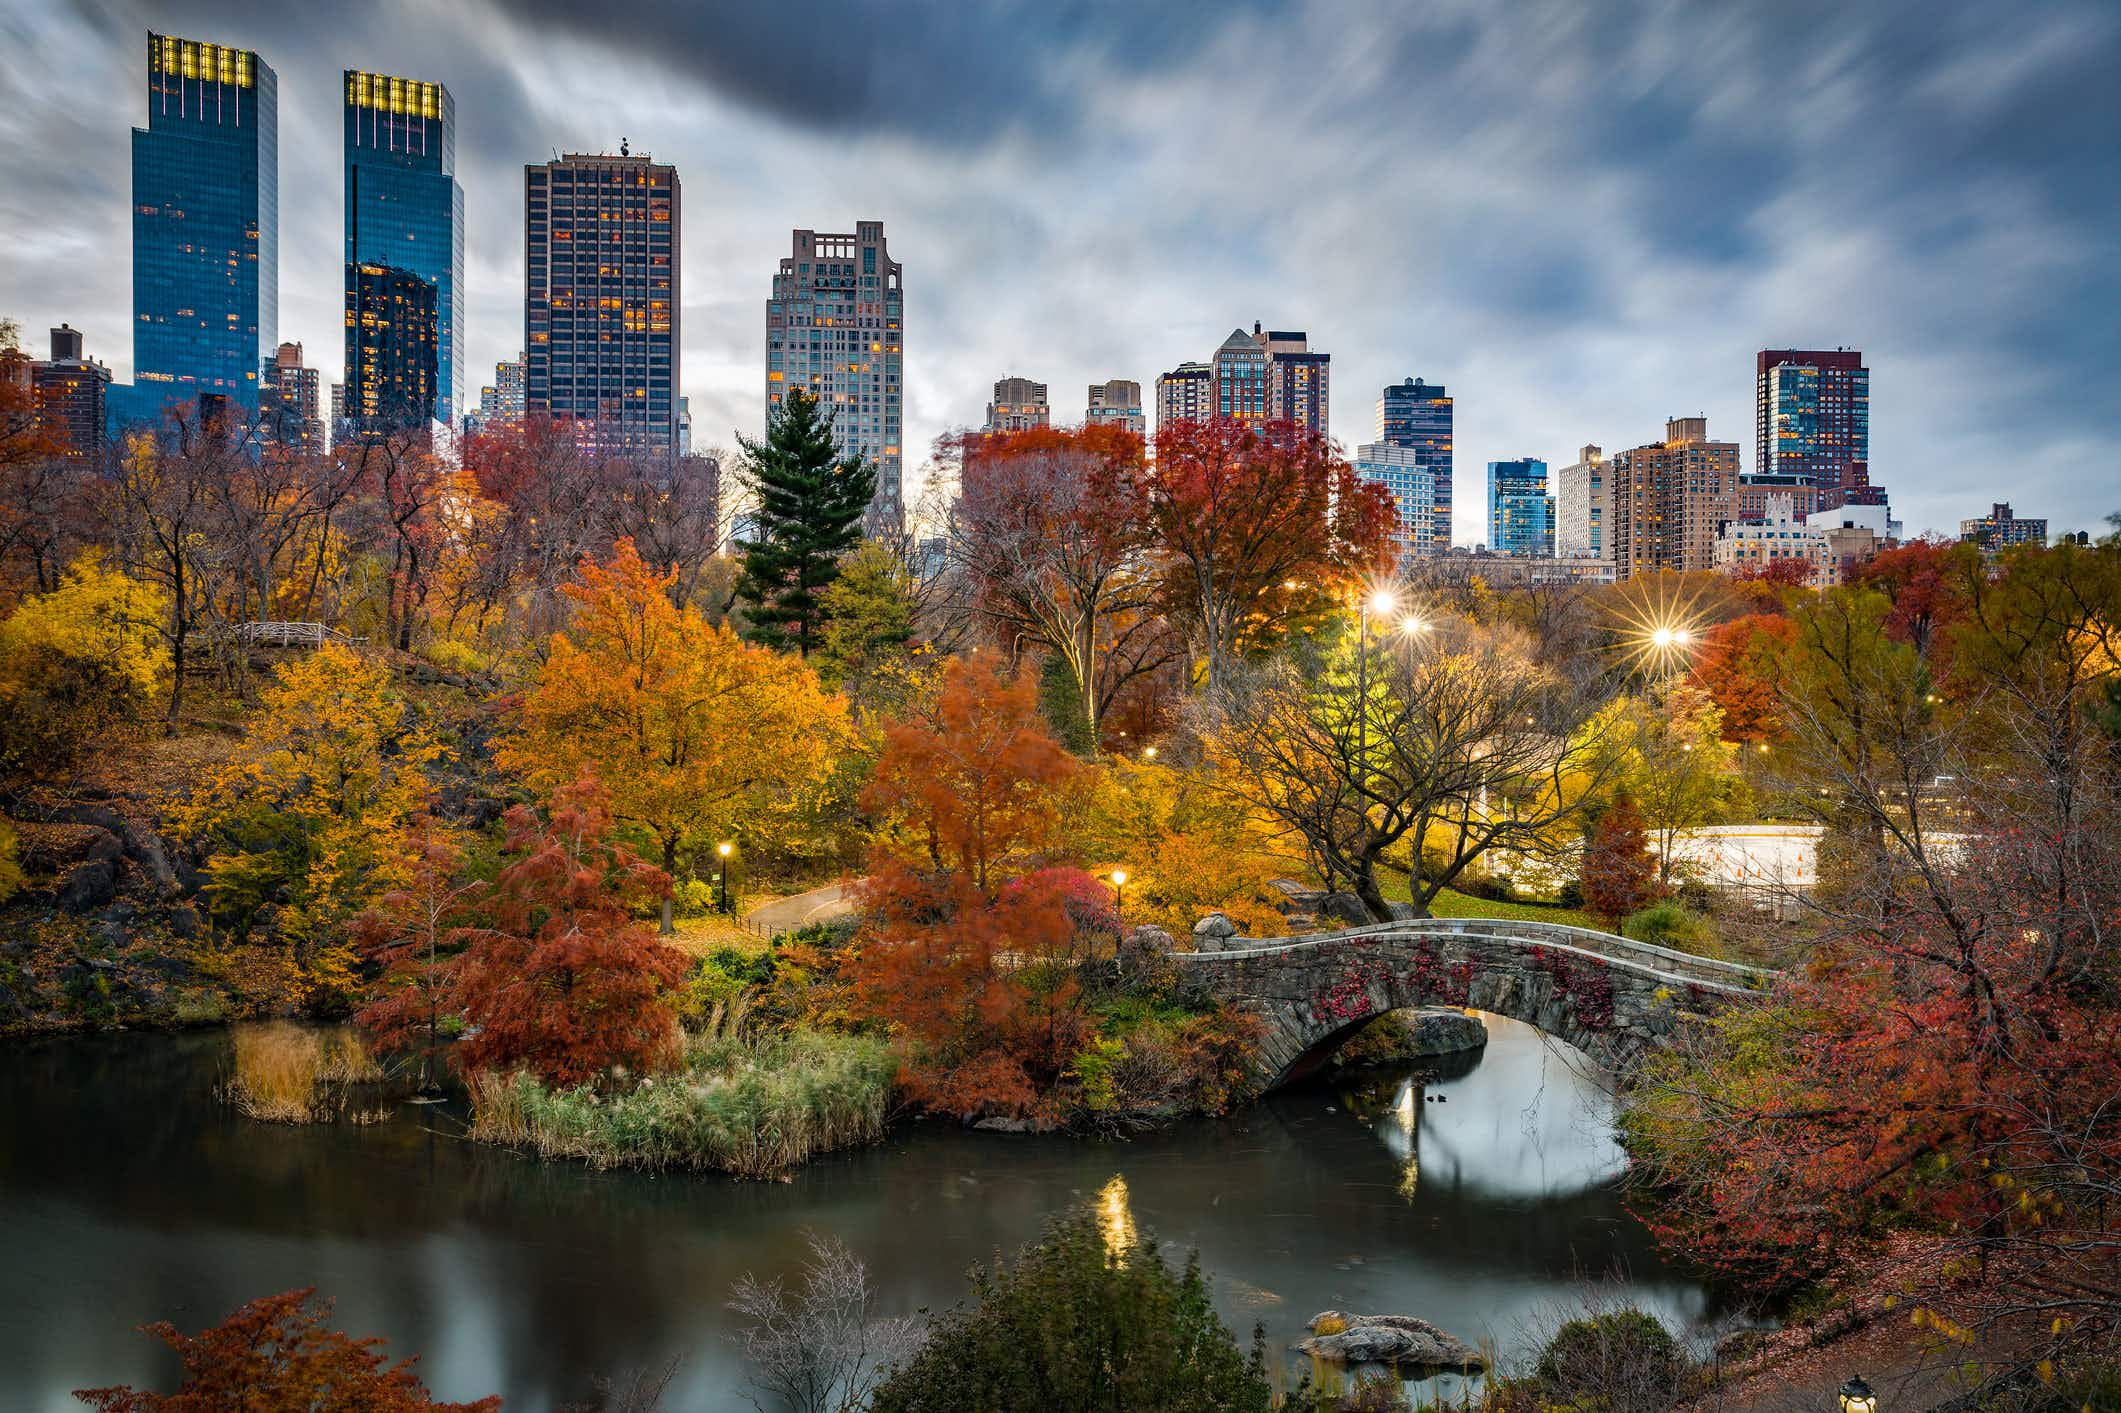 Central Park in New York will get its first statue of historical women